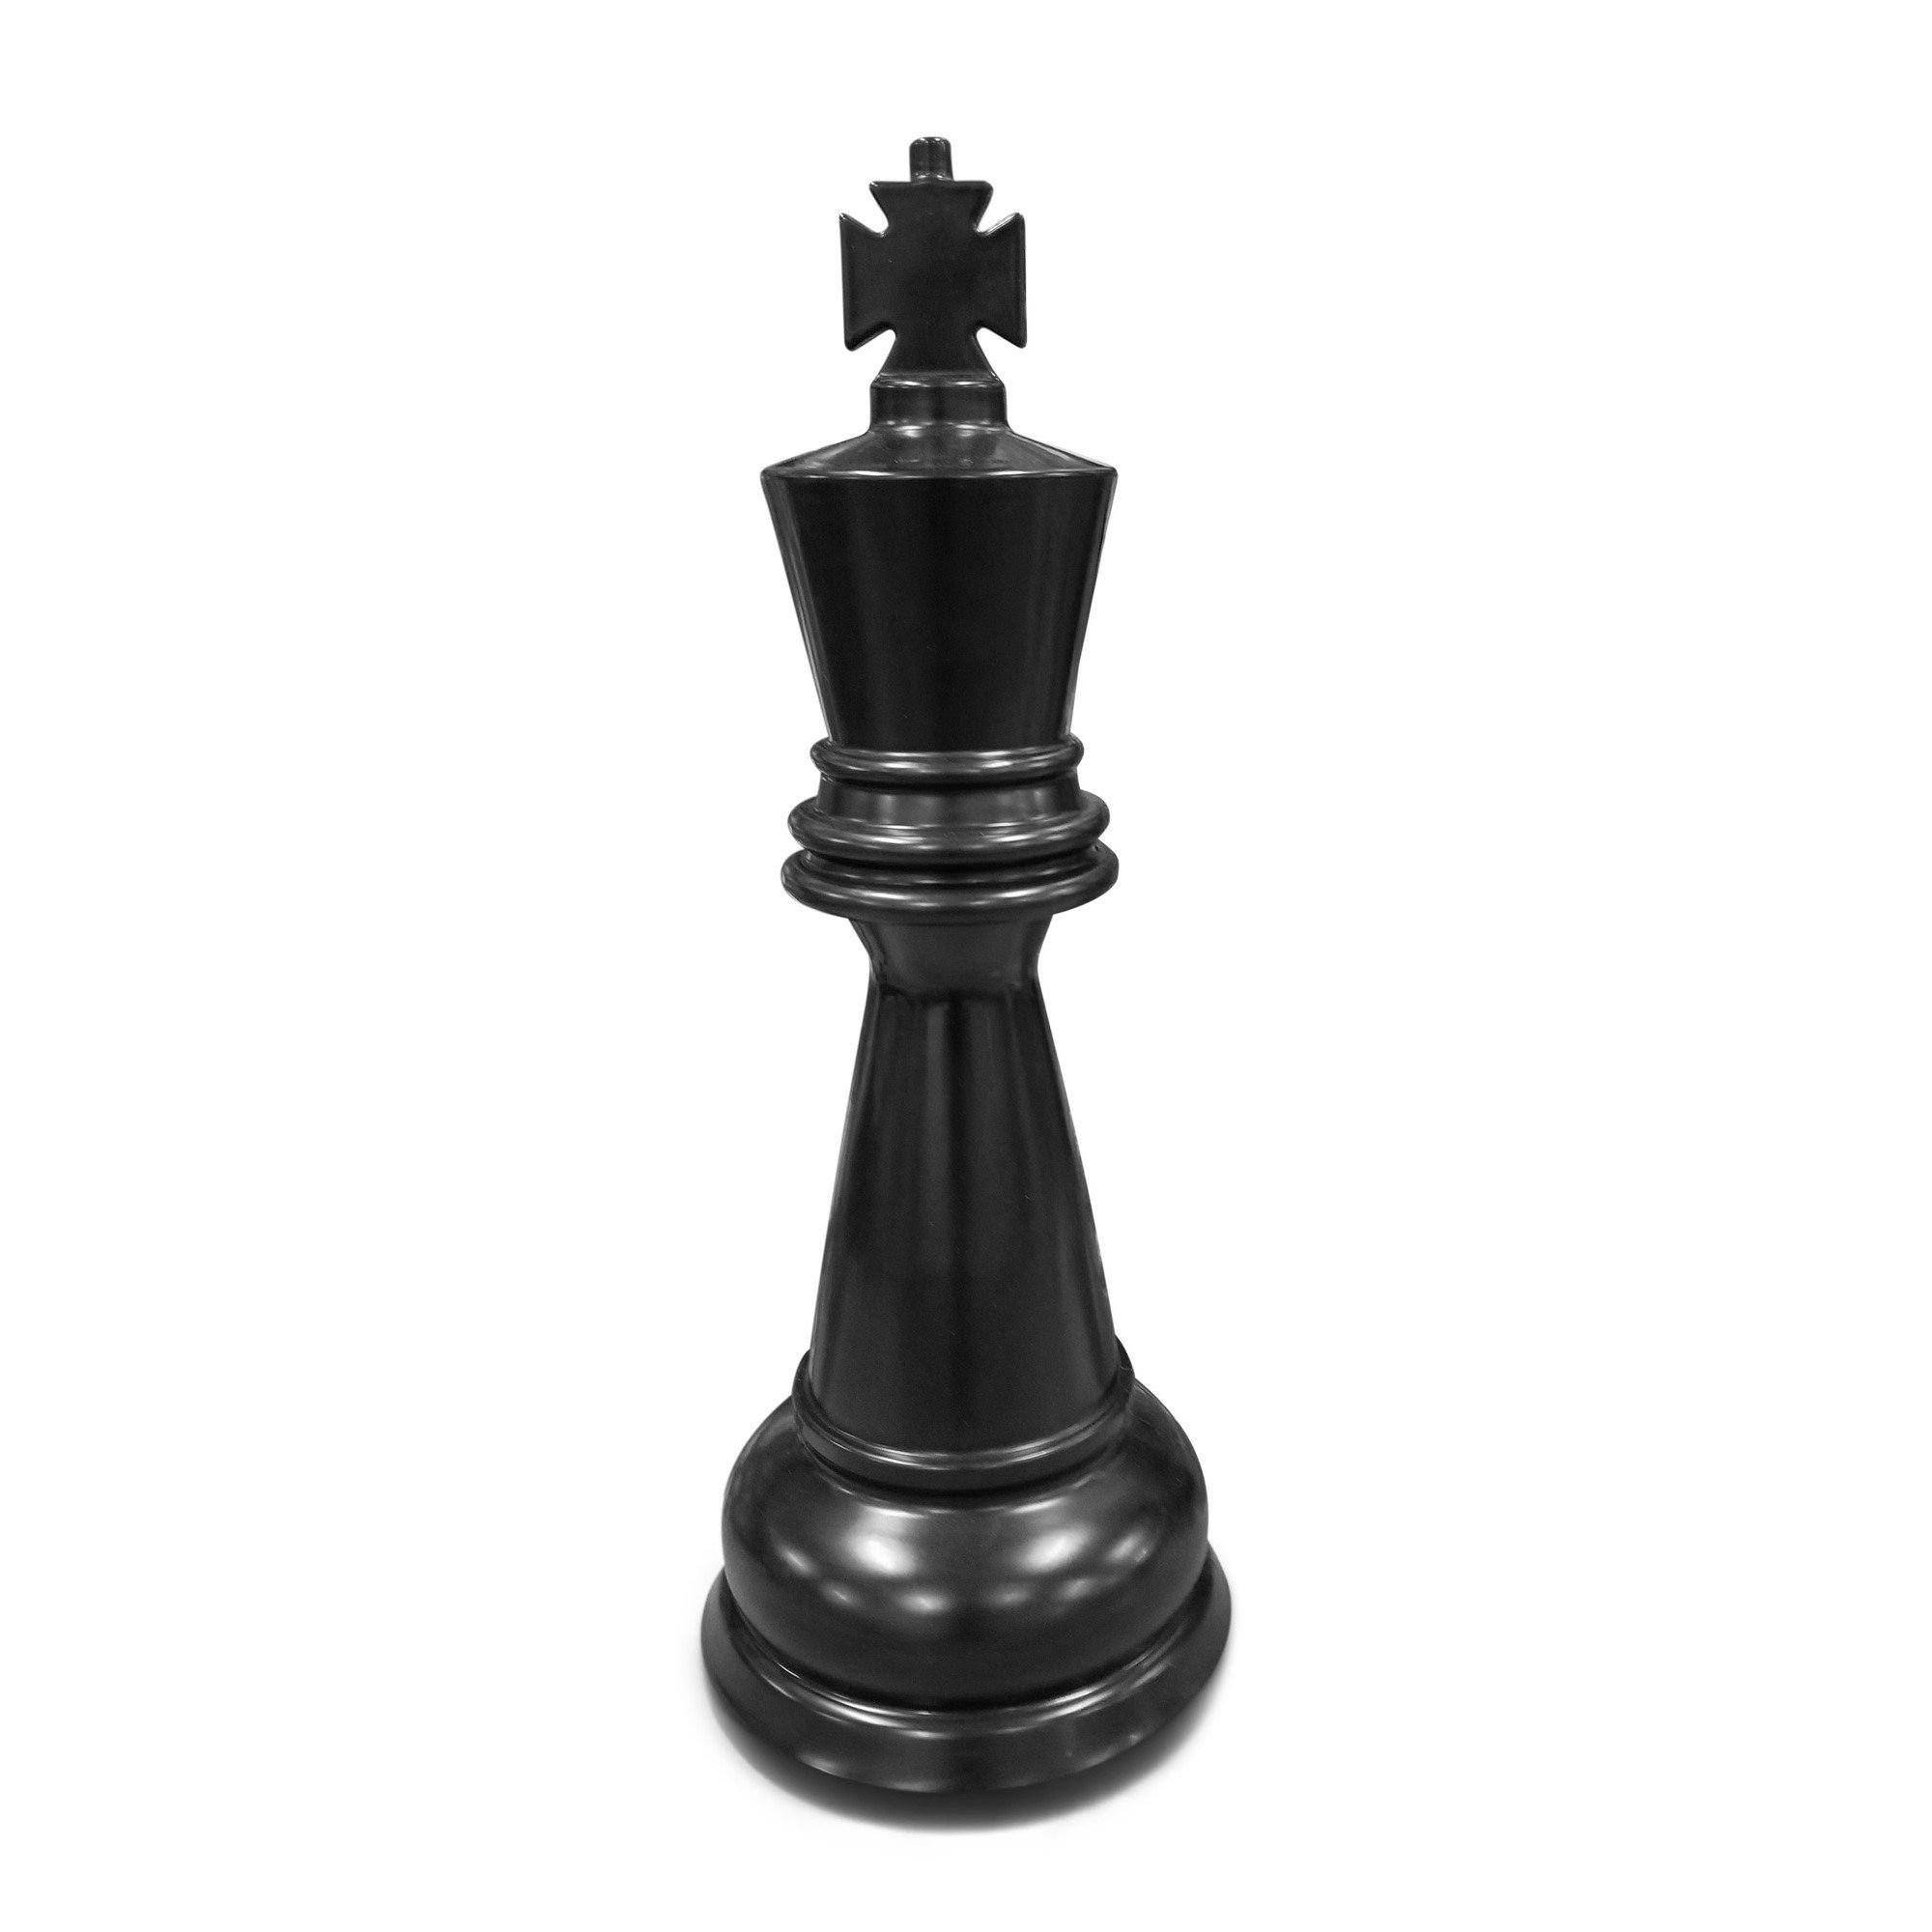 MegaChess 26 Inch Black Premium Plastic King Giant Chess Piece |  | MegaChess.com